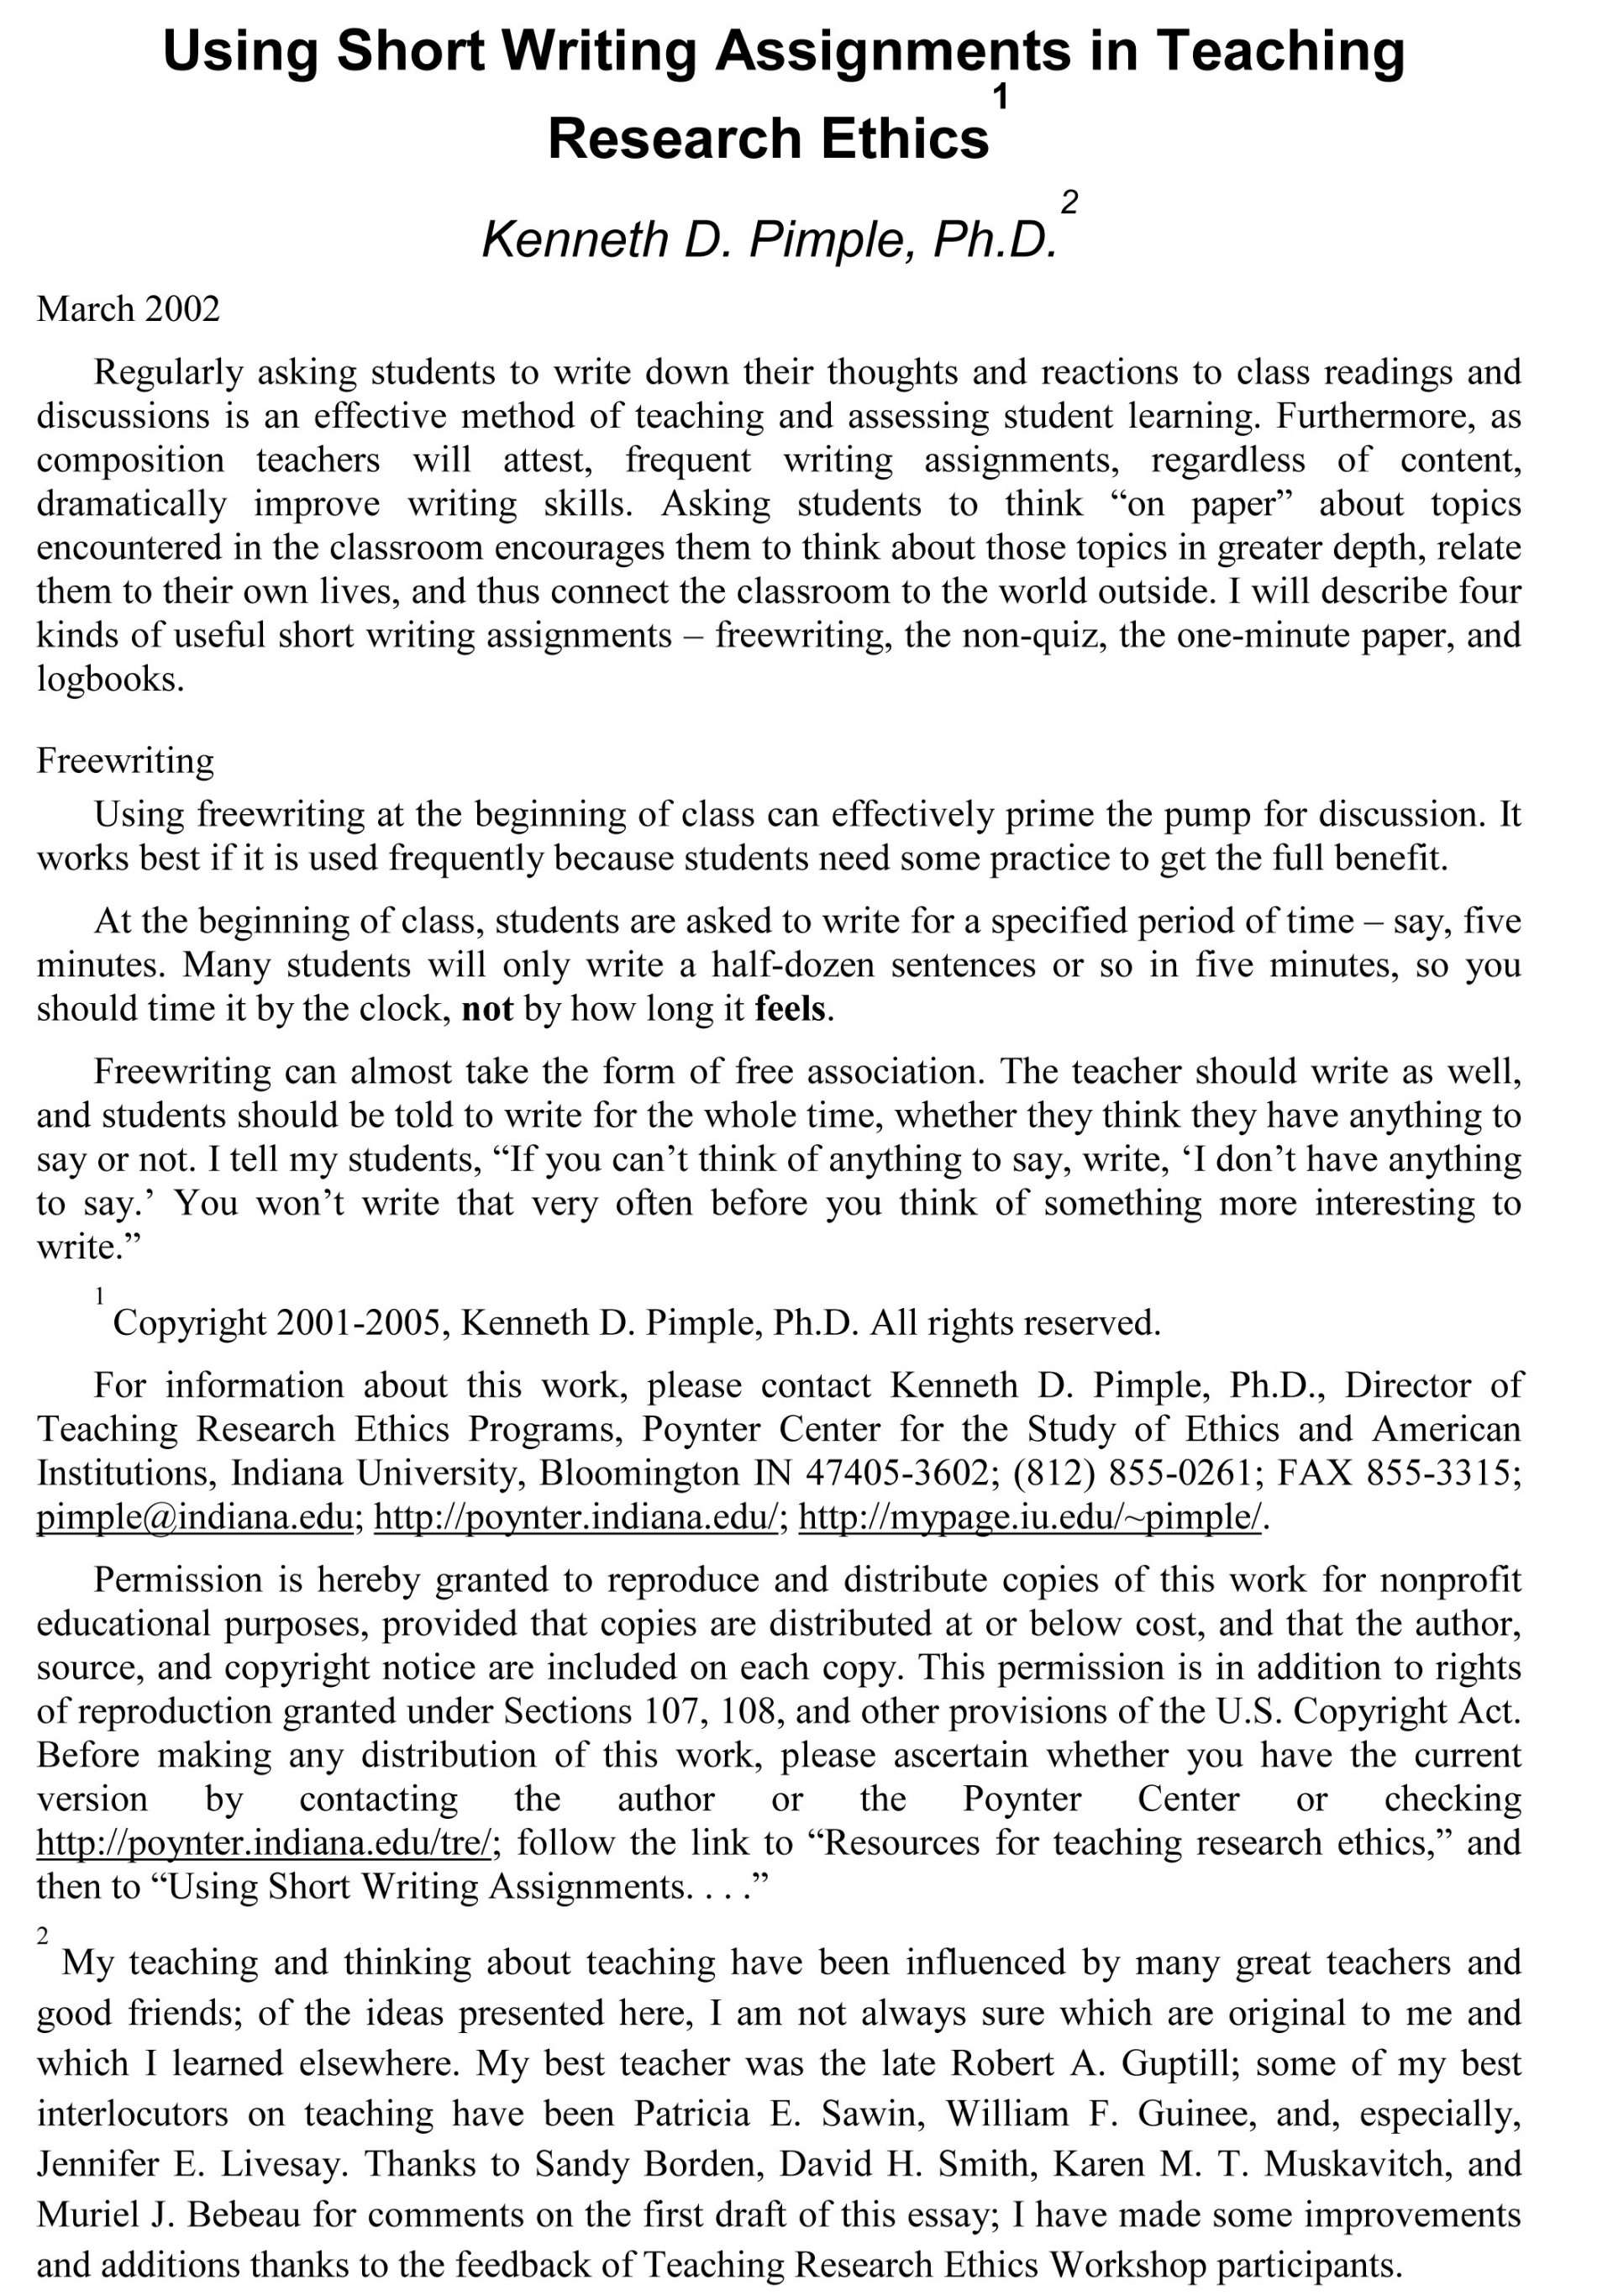 002 Vcu Personal Statement Essay Example Sample Remarkable 1920